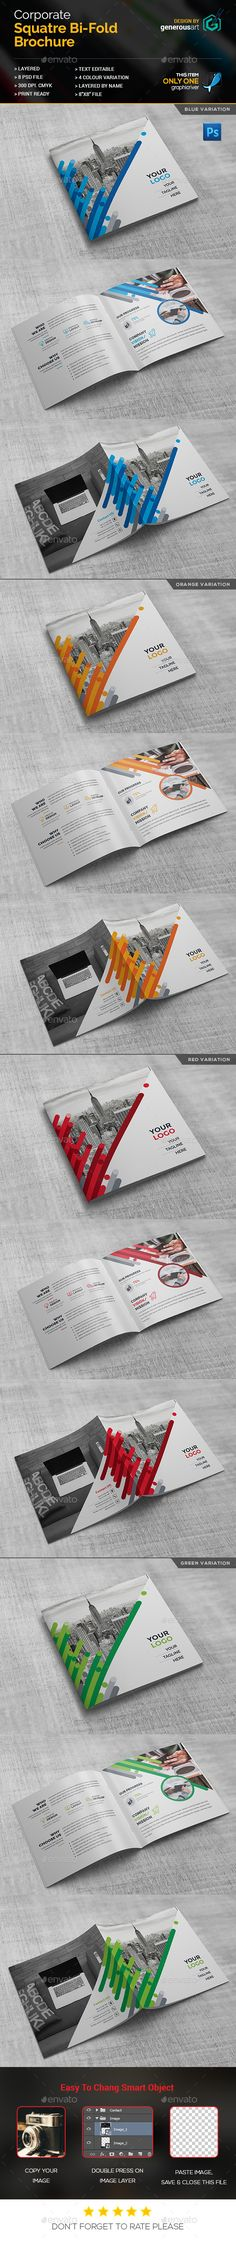 Business Square Bi-Fold - Corporate Brochures Download here : http://graphicriver.net/item/business-square-bifold/16703326?s_rank=82&ref=Al-fatih